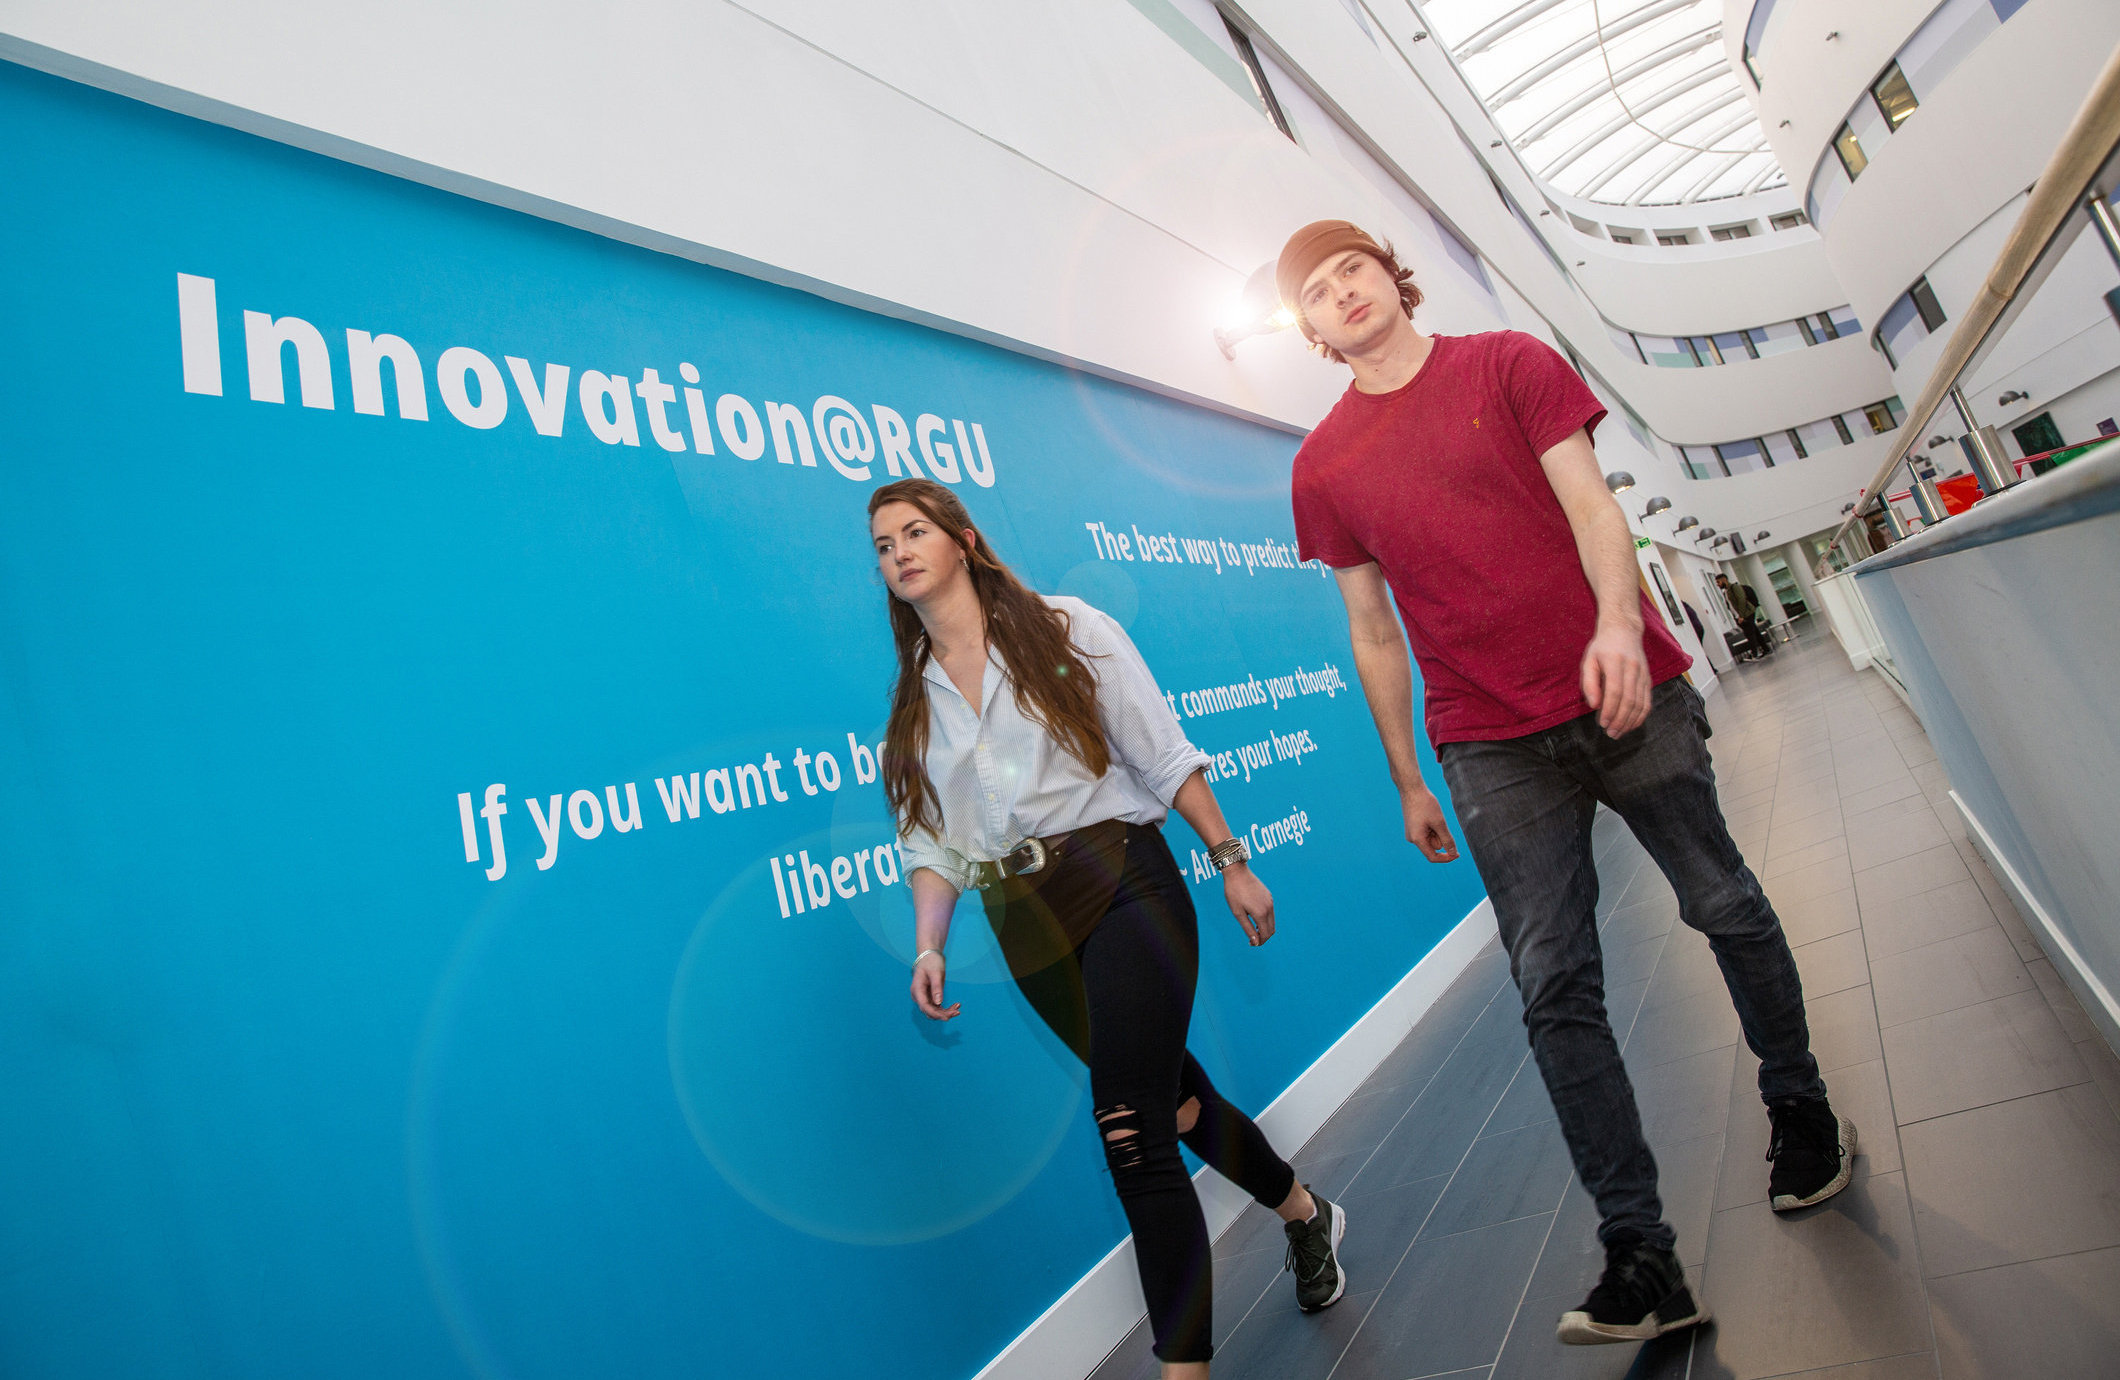 The RGU initiative will provide 28 business teams with mentorship and up to £10,000 in funding